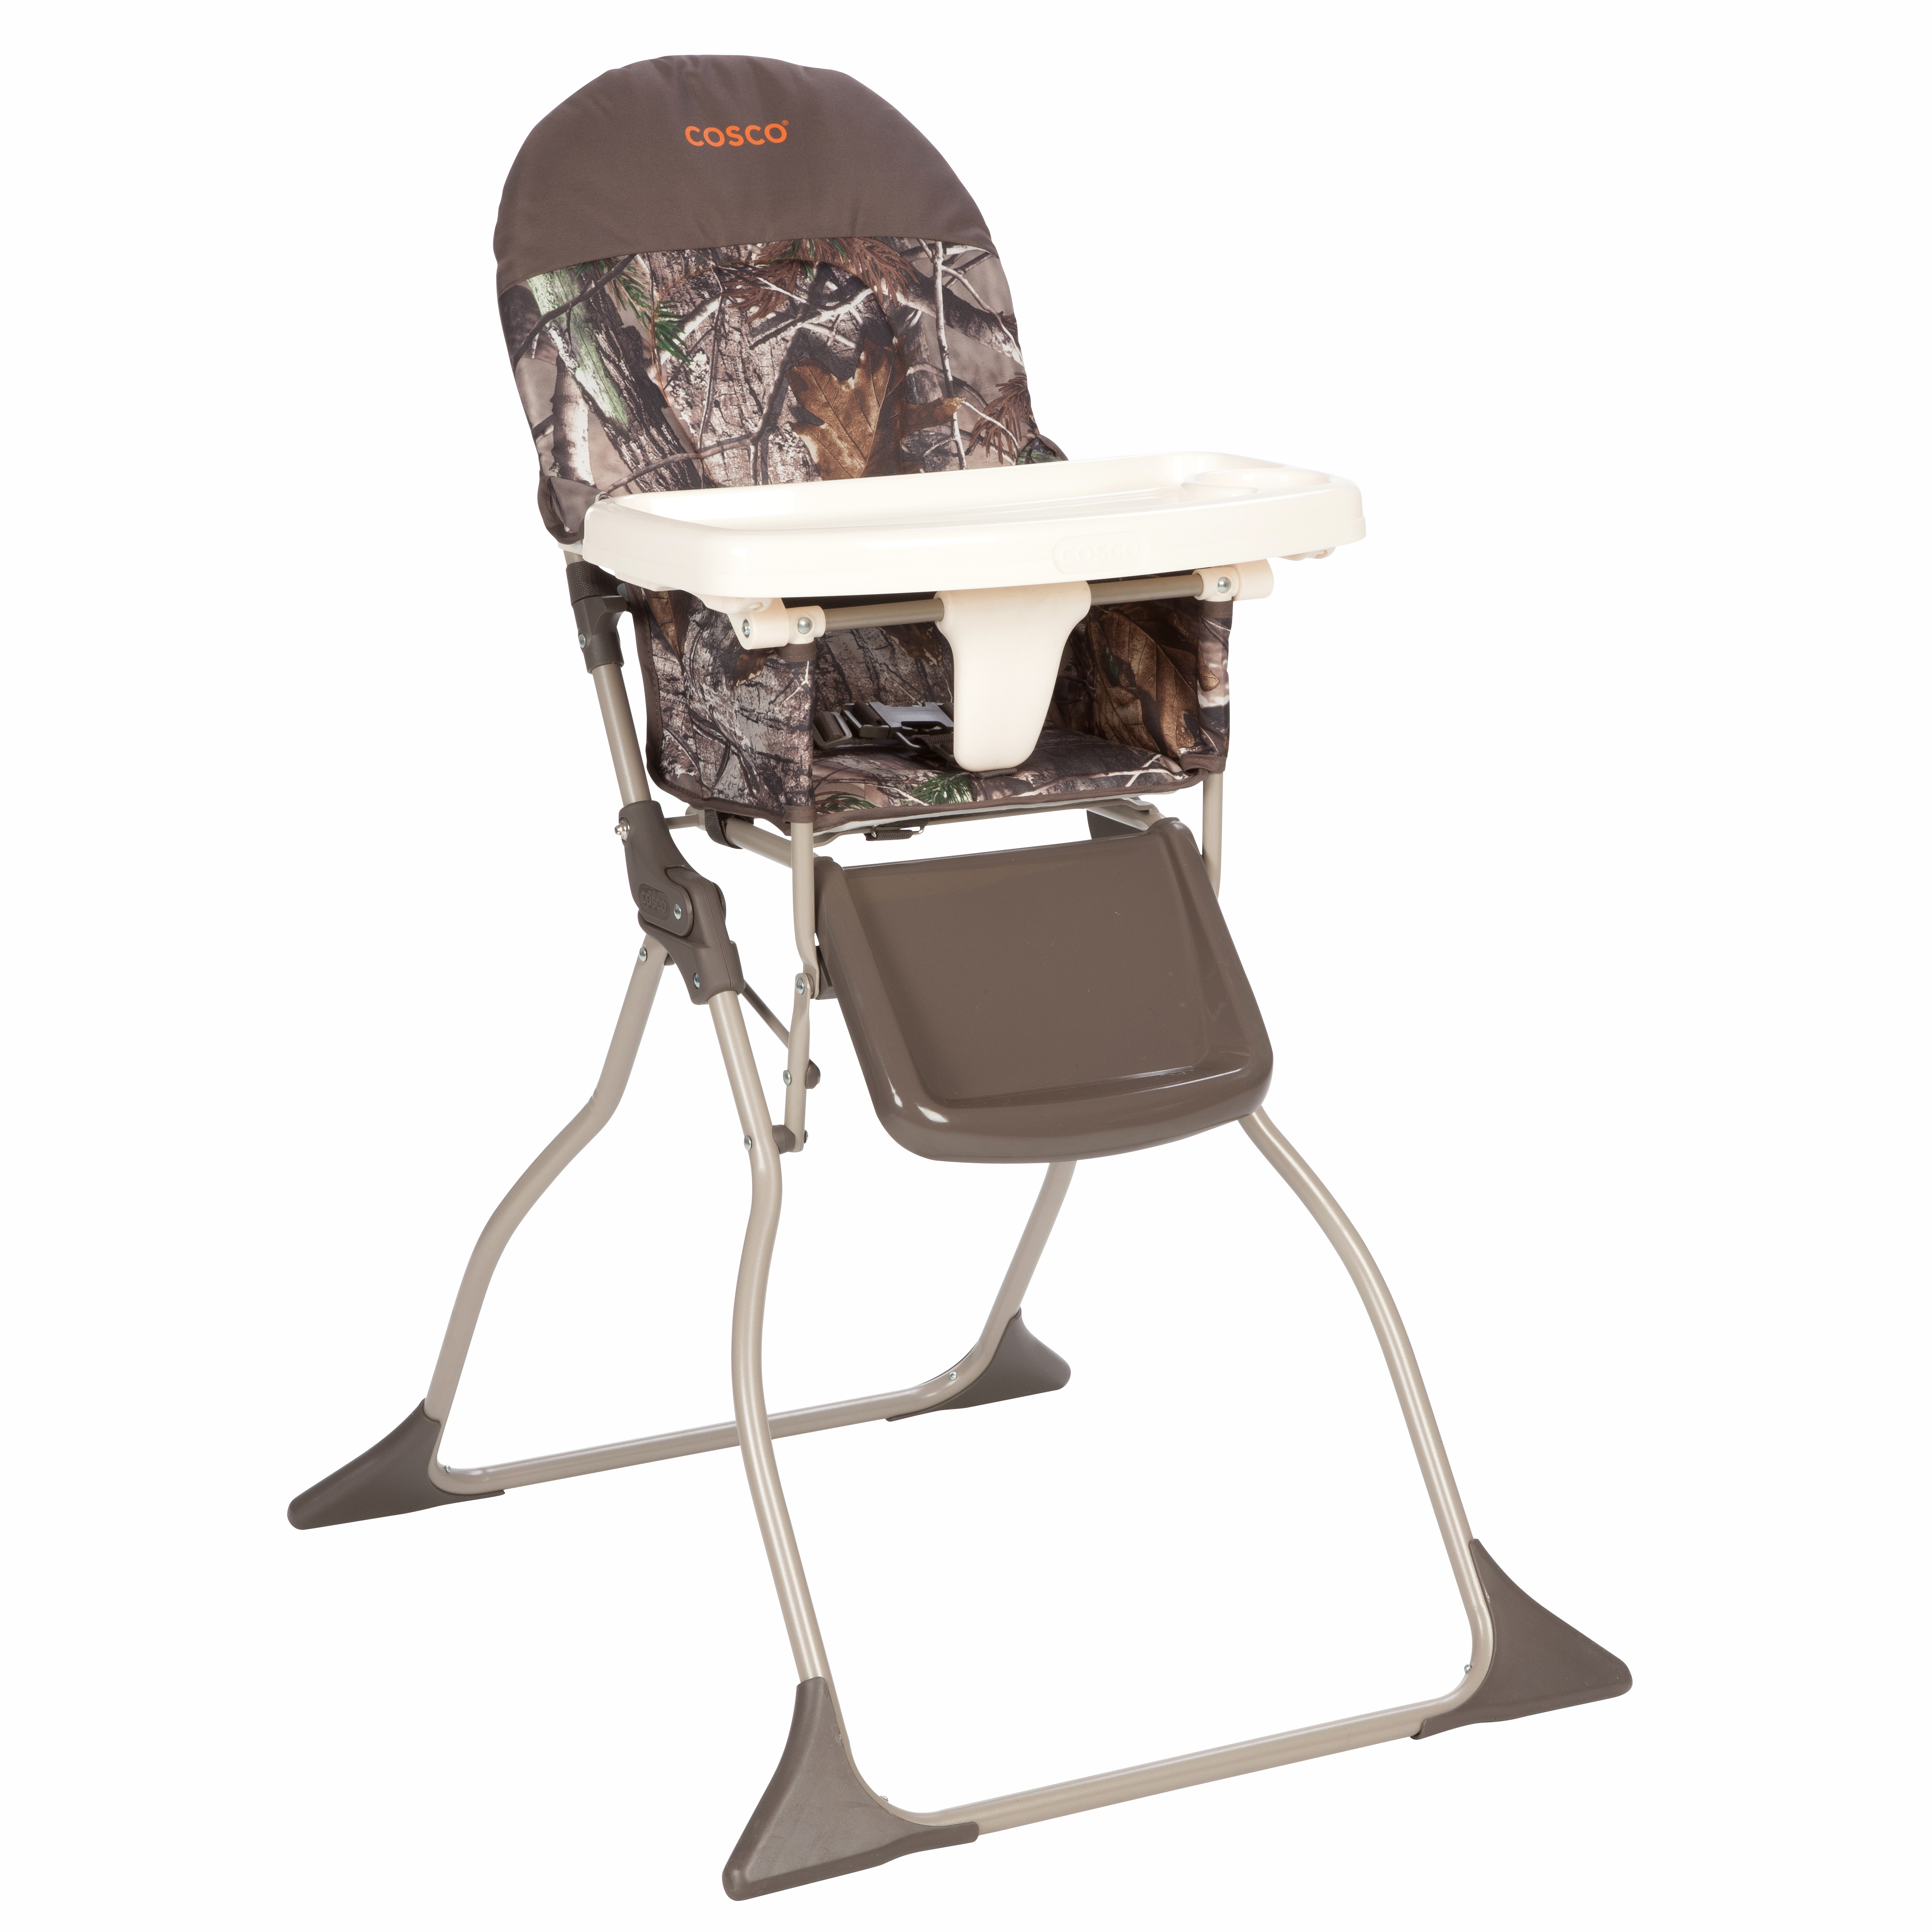 Cosco Simple Fold™ Full Size High Chair with Adjustable Tray, Realtree